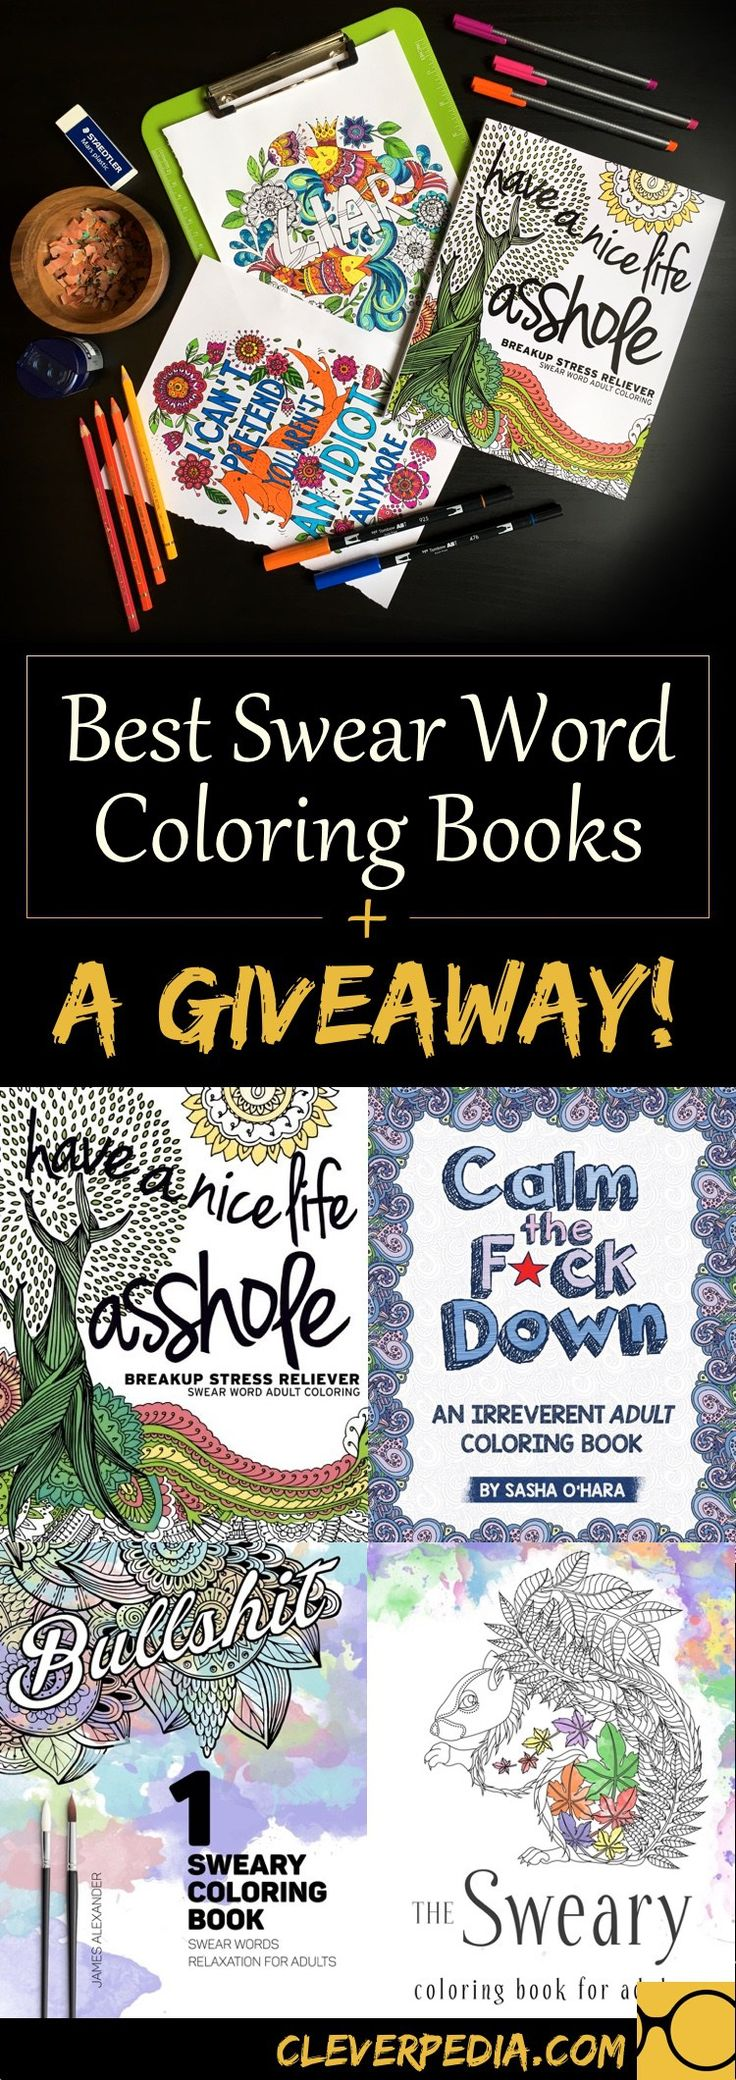 Swear word coloring book volume 1 - Best Swear Word Coloring Books A Giveaway